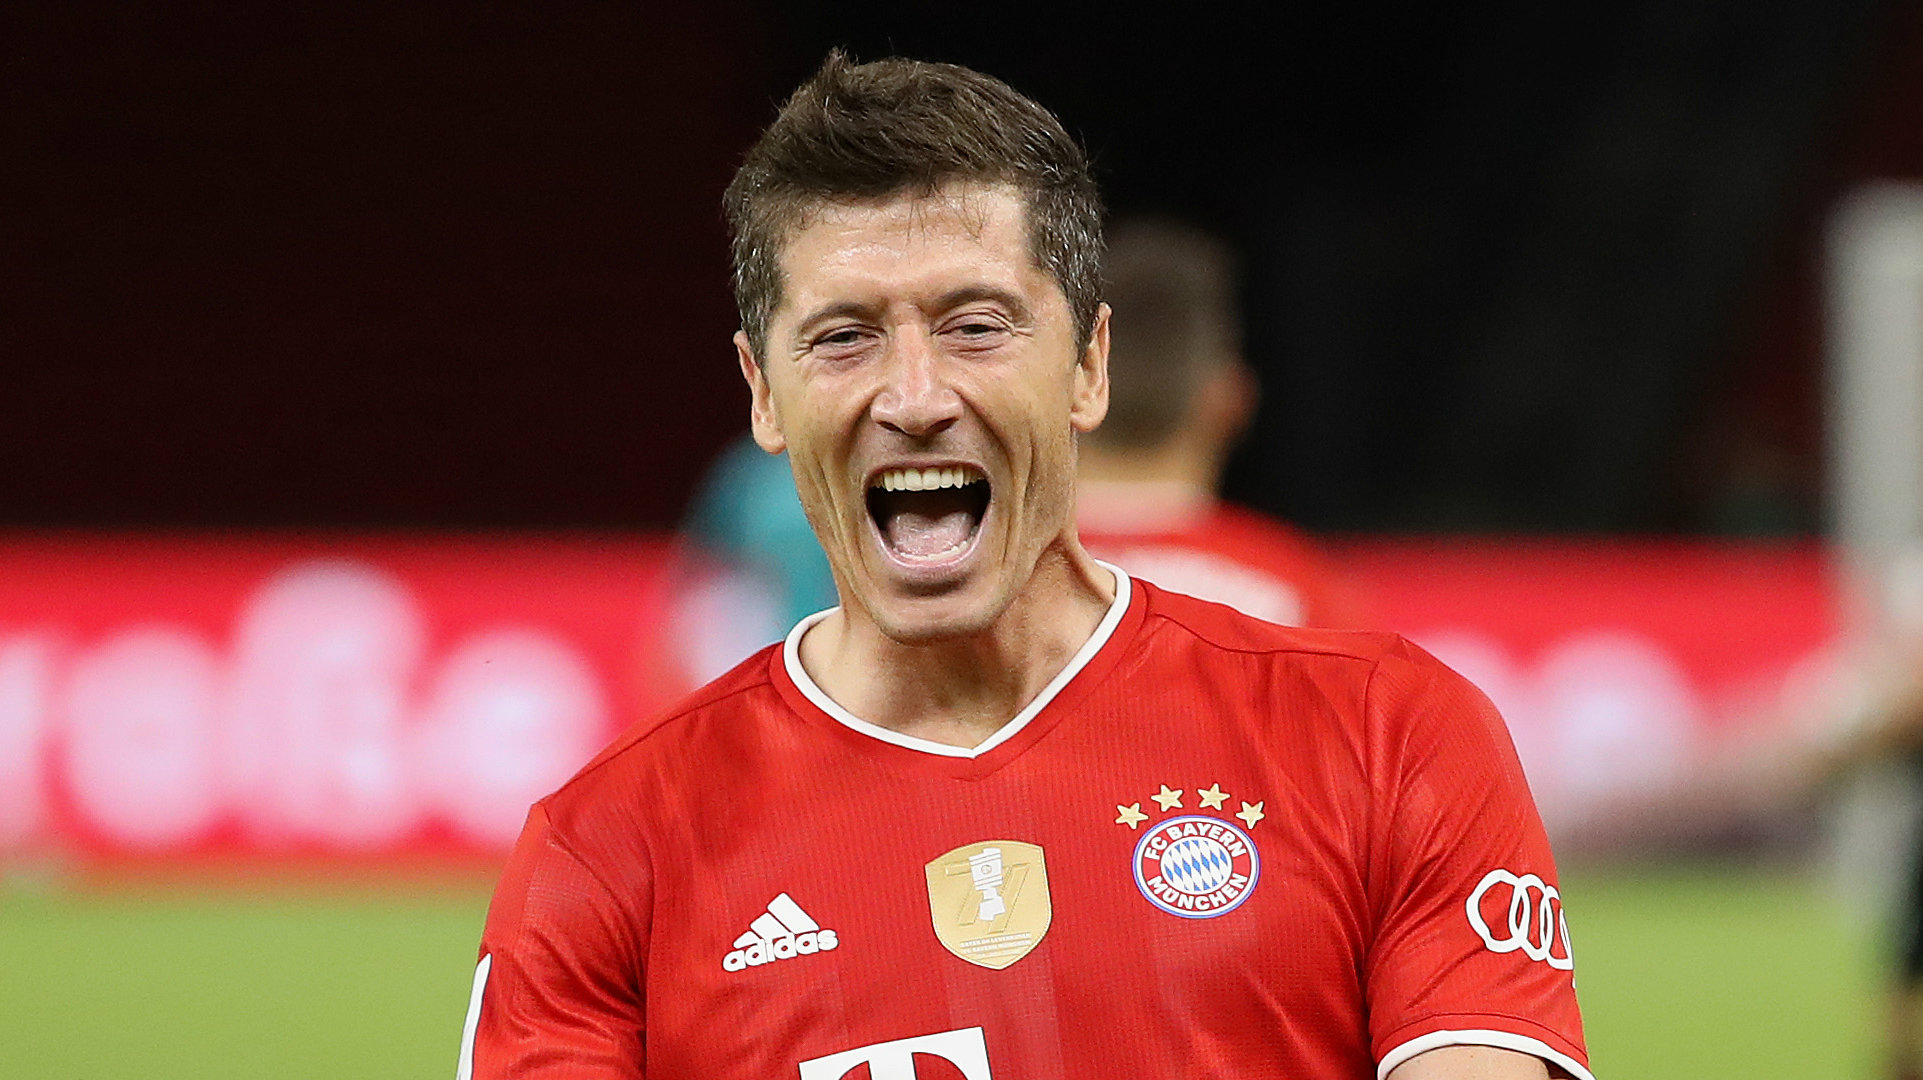 Lewandowski wants to play until he turns 40 as Bayern Munich striker says he has reached 'optimal level'